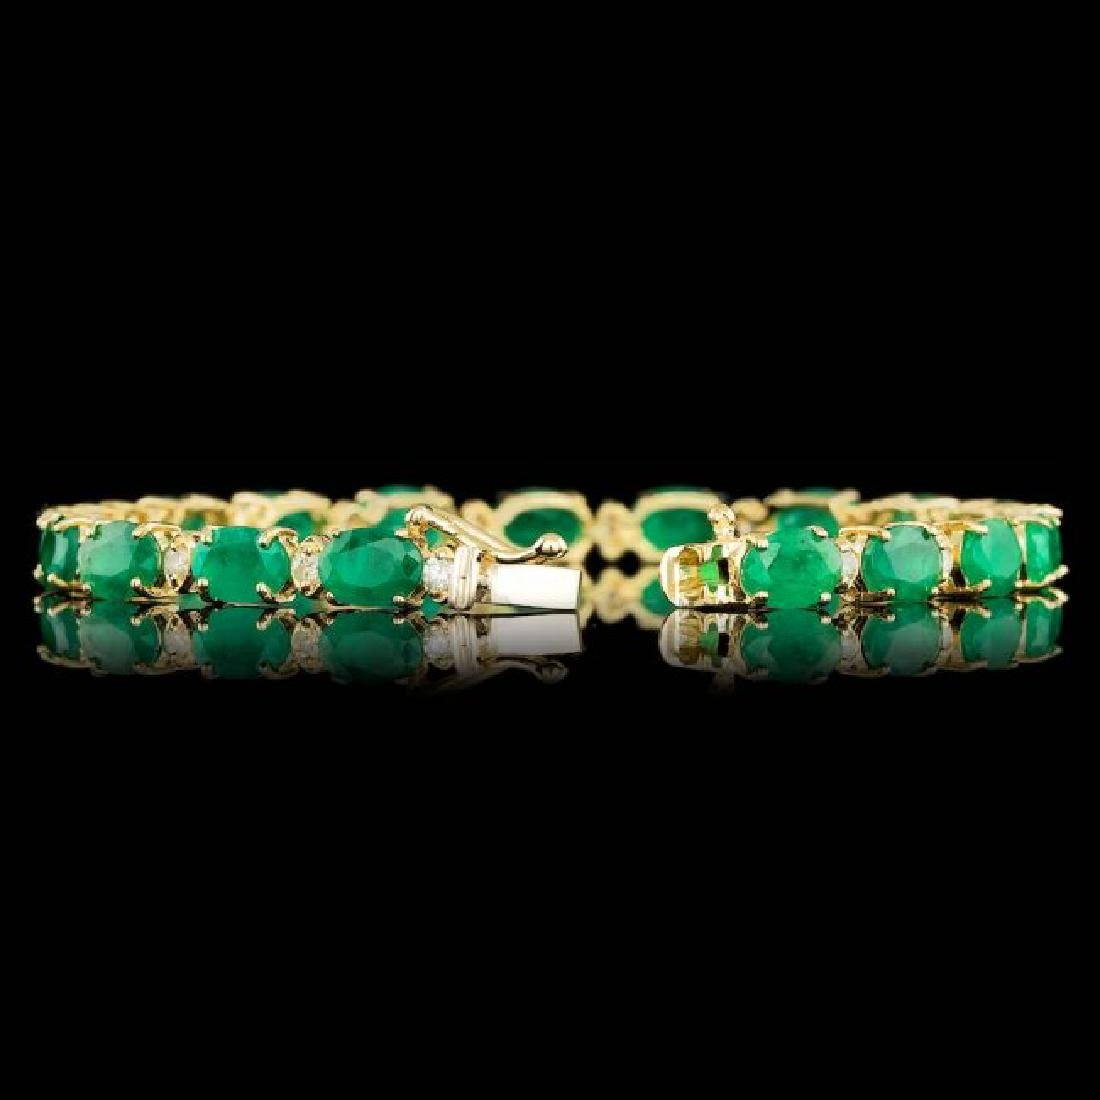 14k Gold 14.00ct Emerald 1.00ct Diamond Bracelet - 2